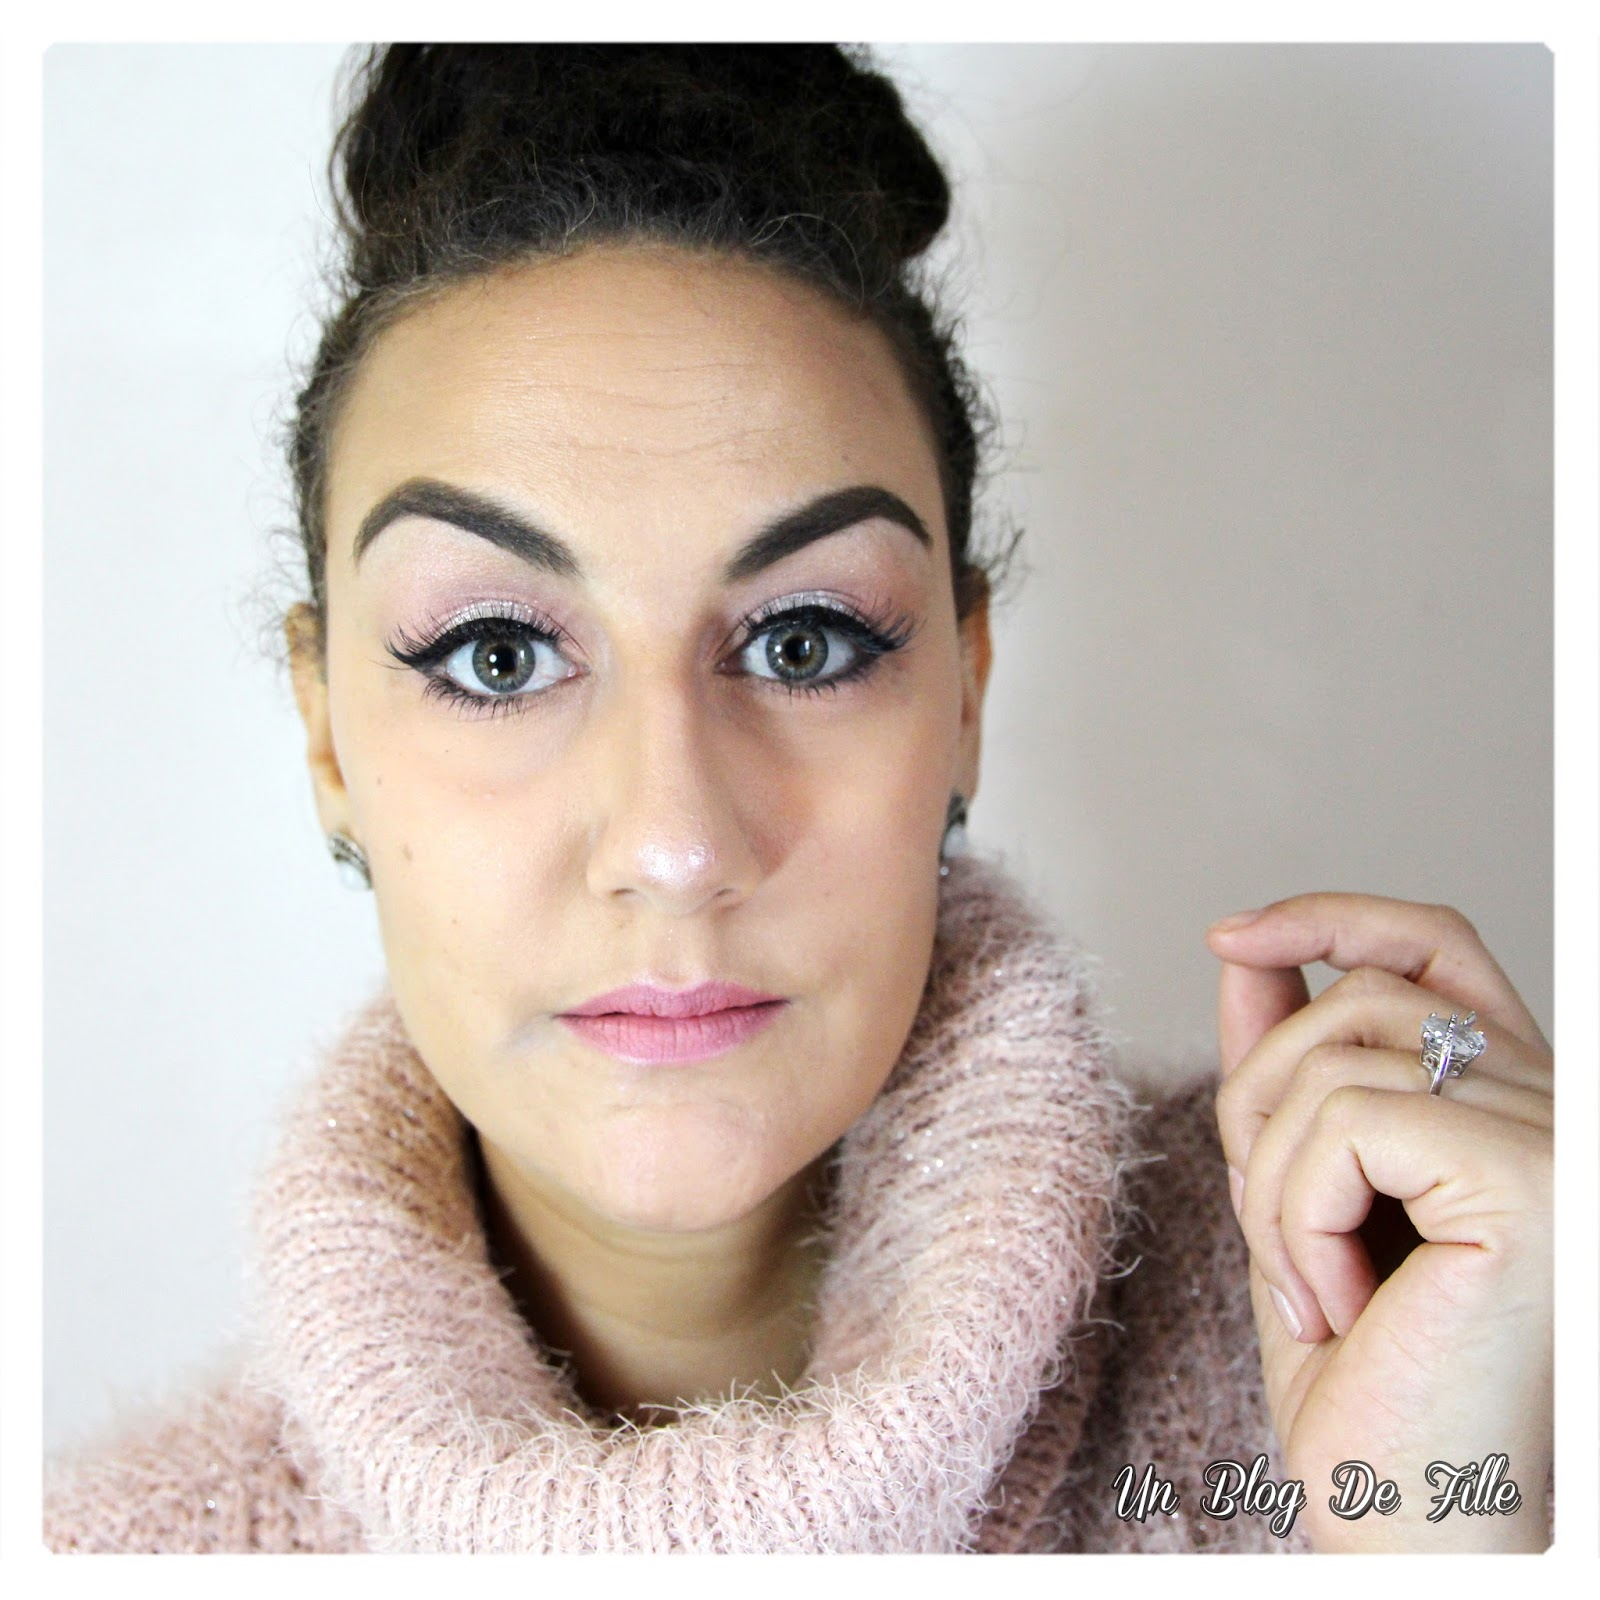 https://unblogdefille.blogspot.fr/2018/03/maquillage-rose-et-argent-msc.html